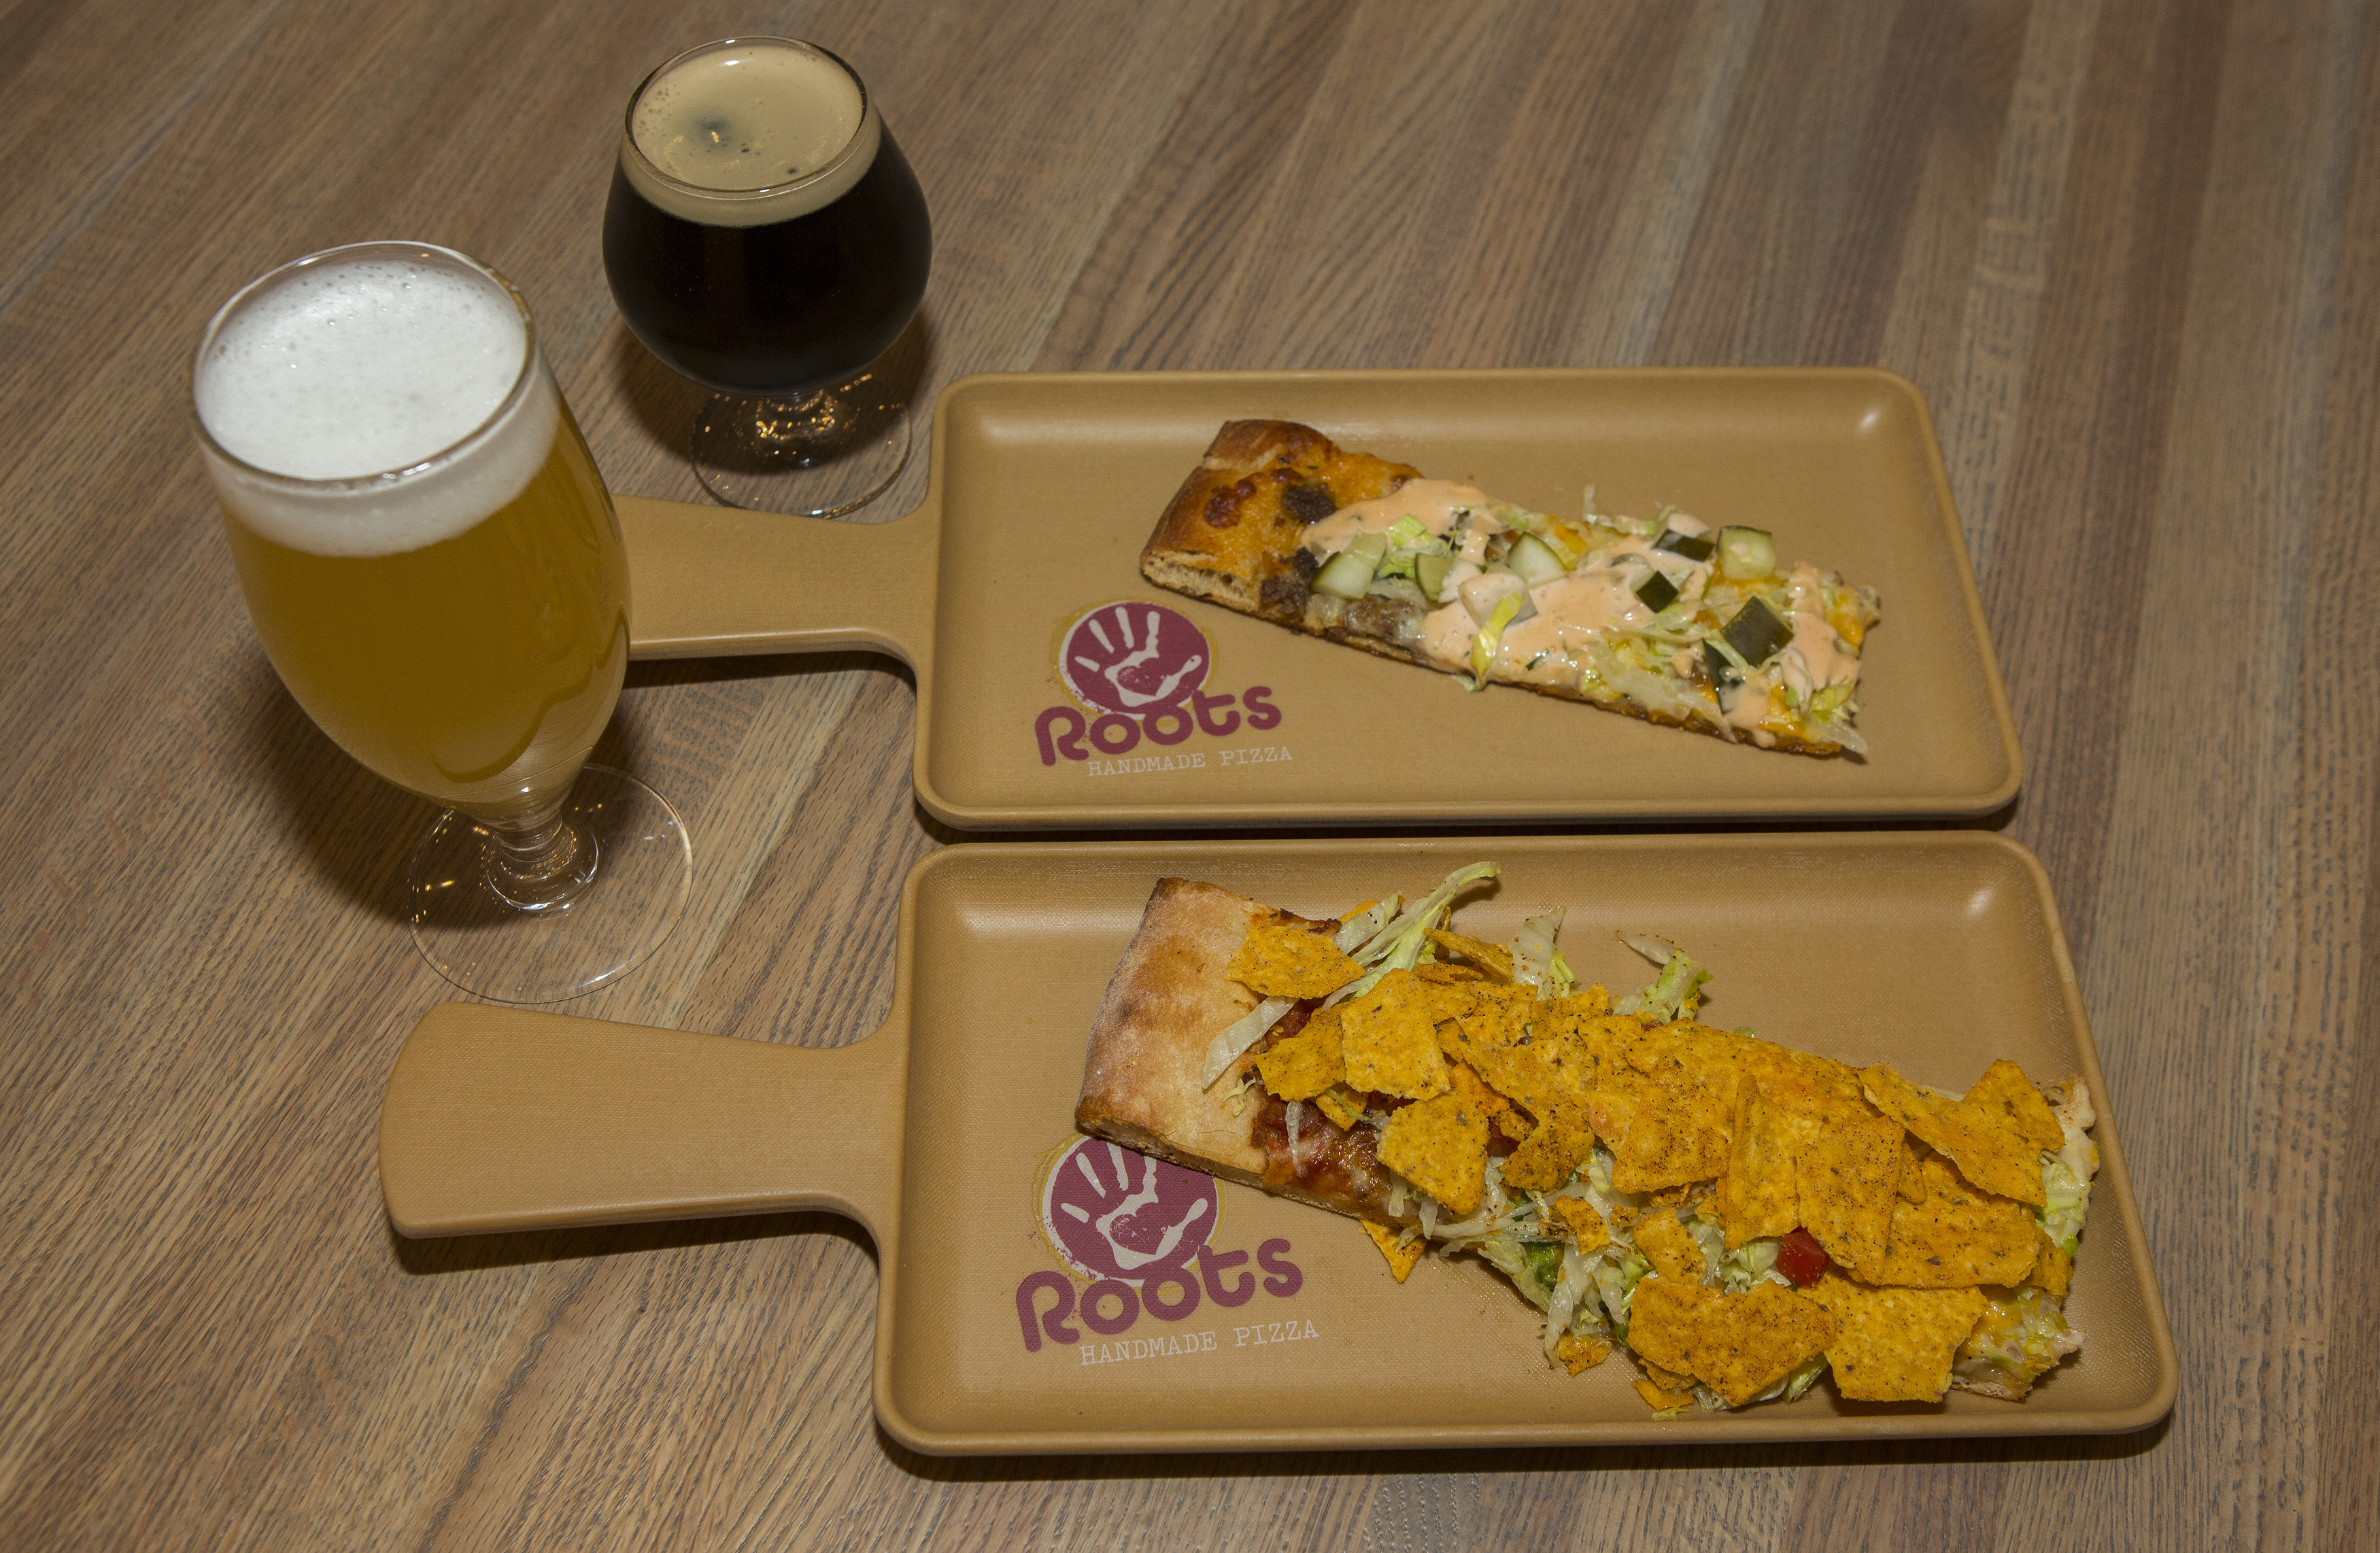 A lager and dark beer in tulip glasses next to two trays with a strip of Quad City pizza.